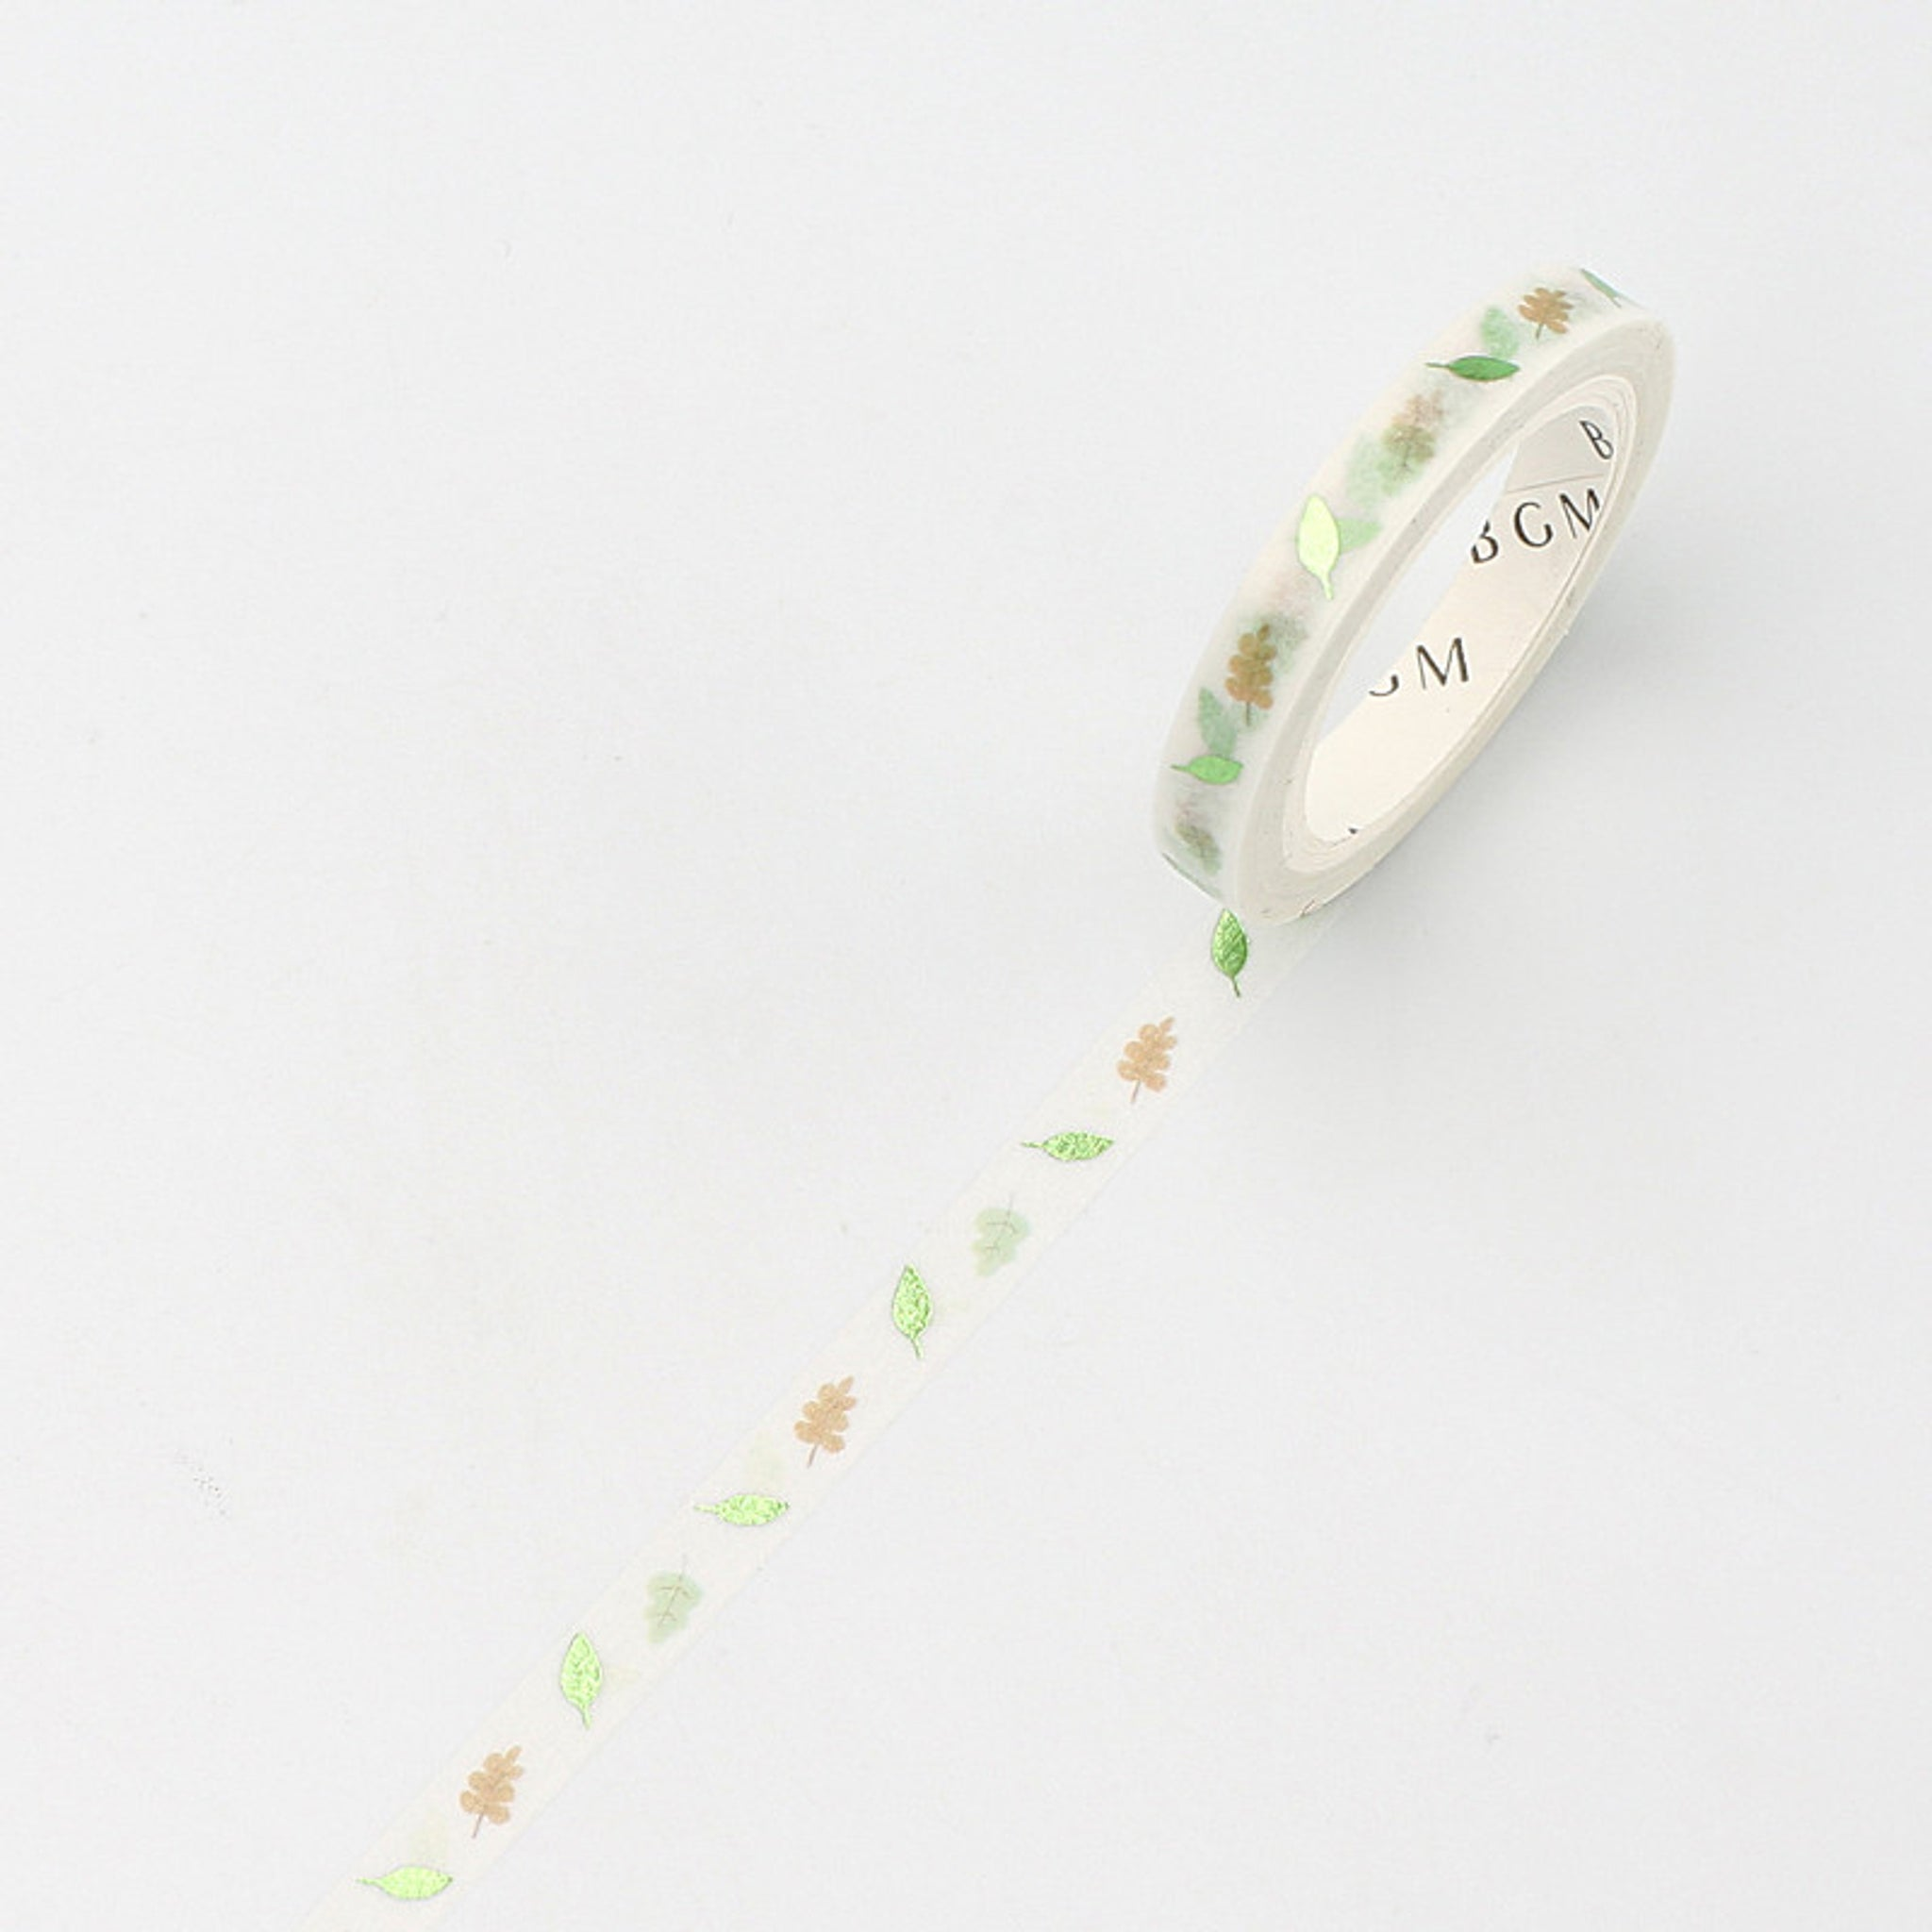 BGM Fallen Leaves Washi Tape